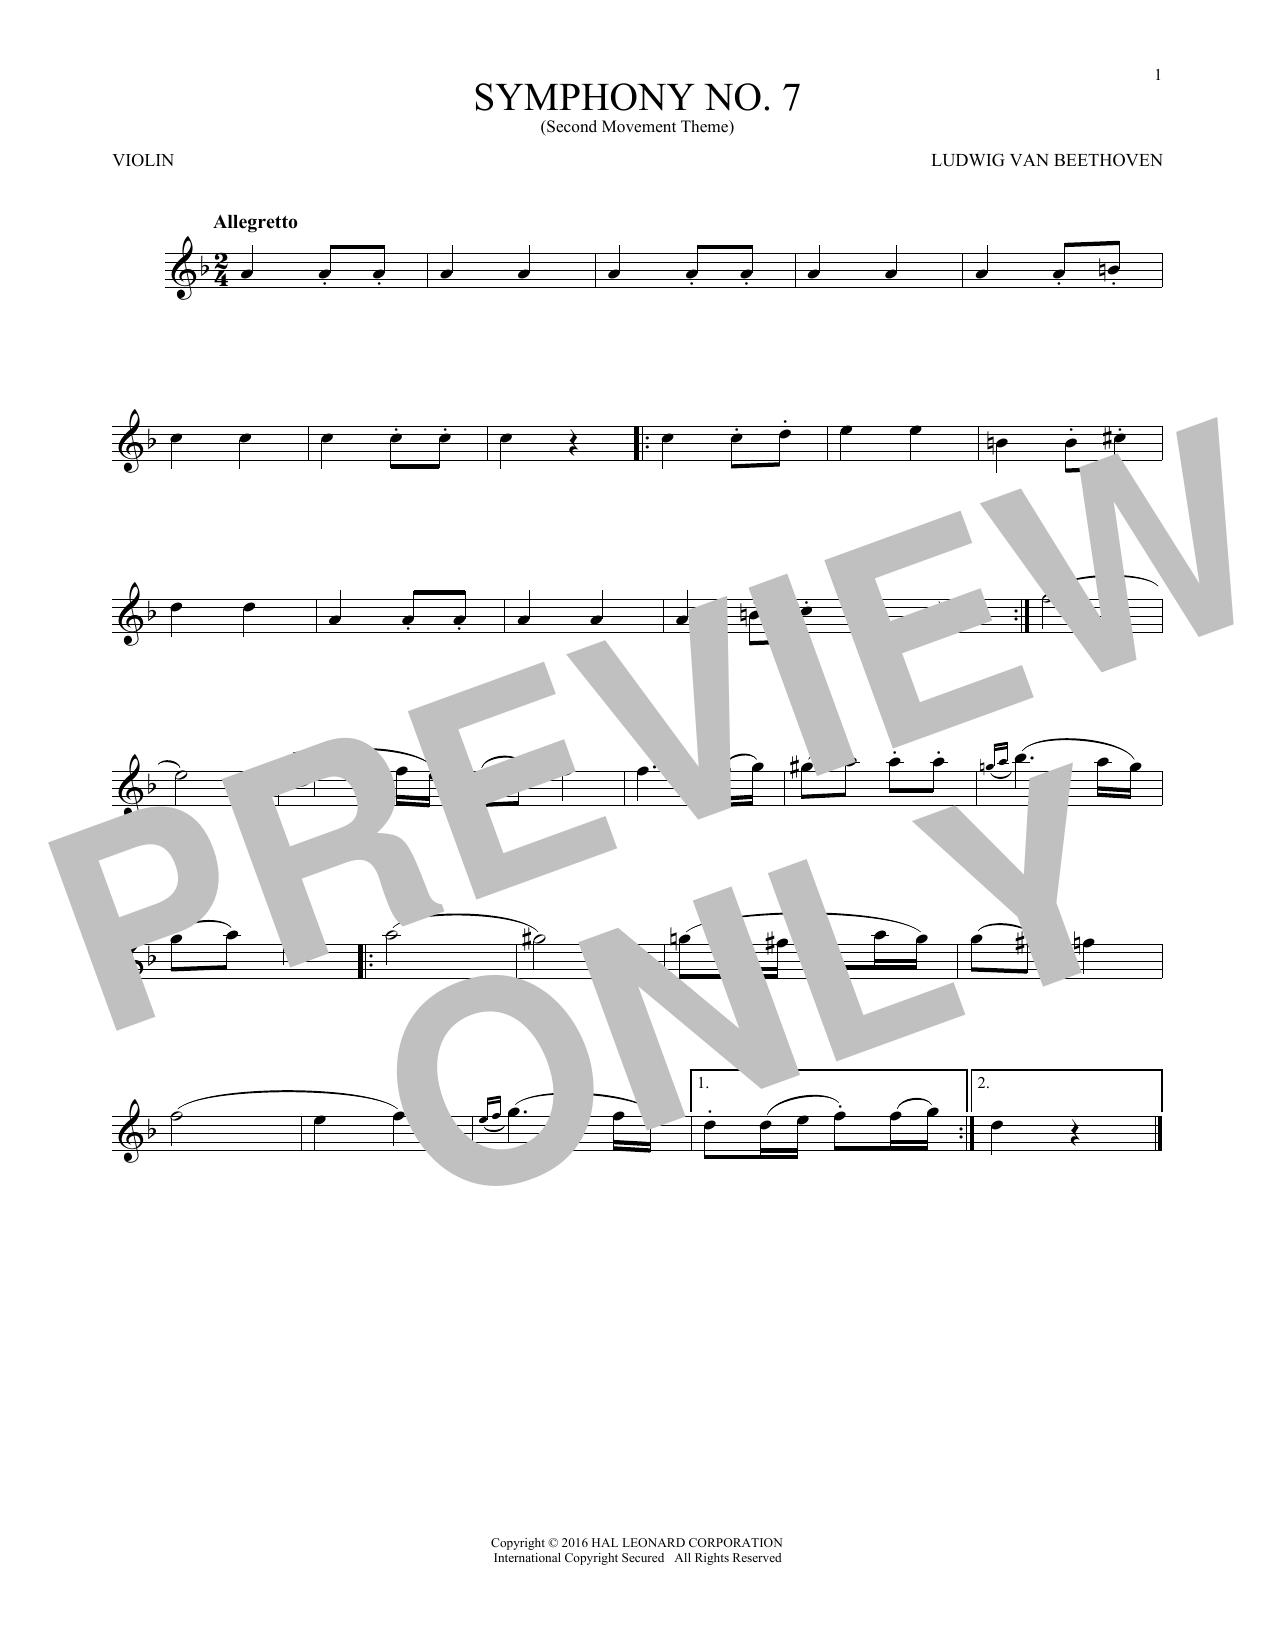 Ludwig van Beethoven Symphony No. 7 In A Major, Second Movement (Allegretto) sheet music notes and chords. Download Printable PDF.